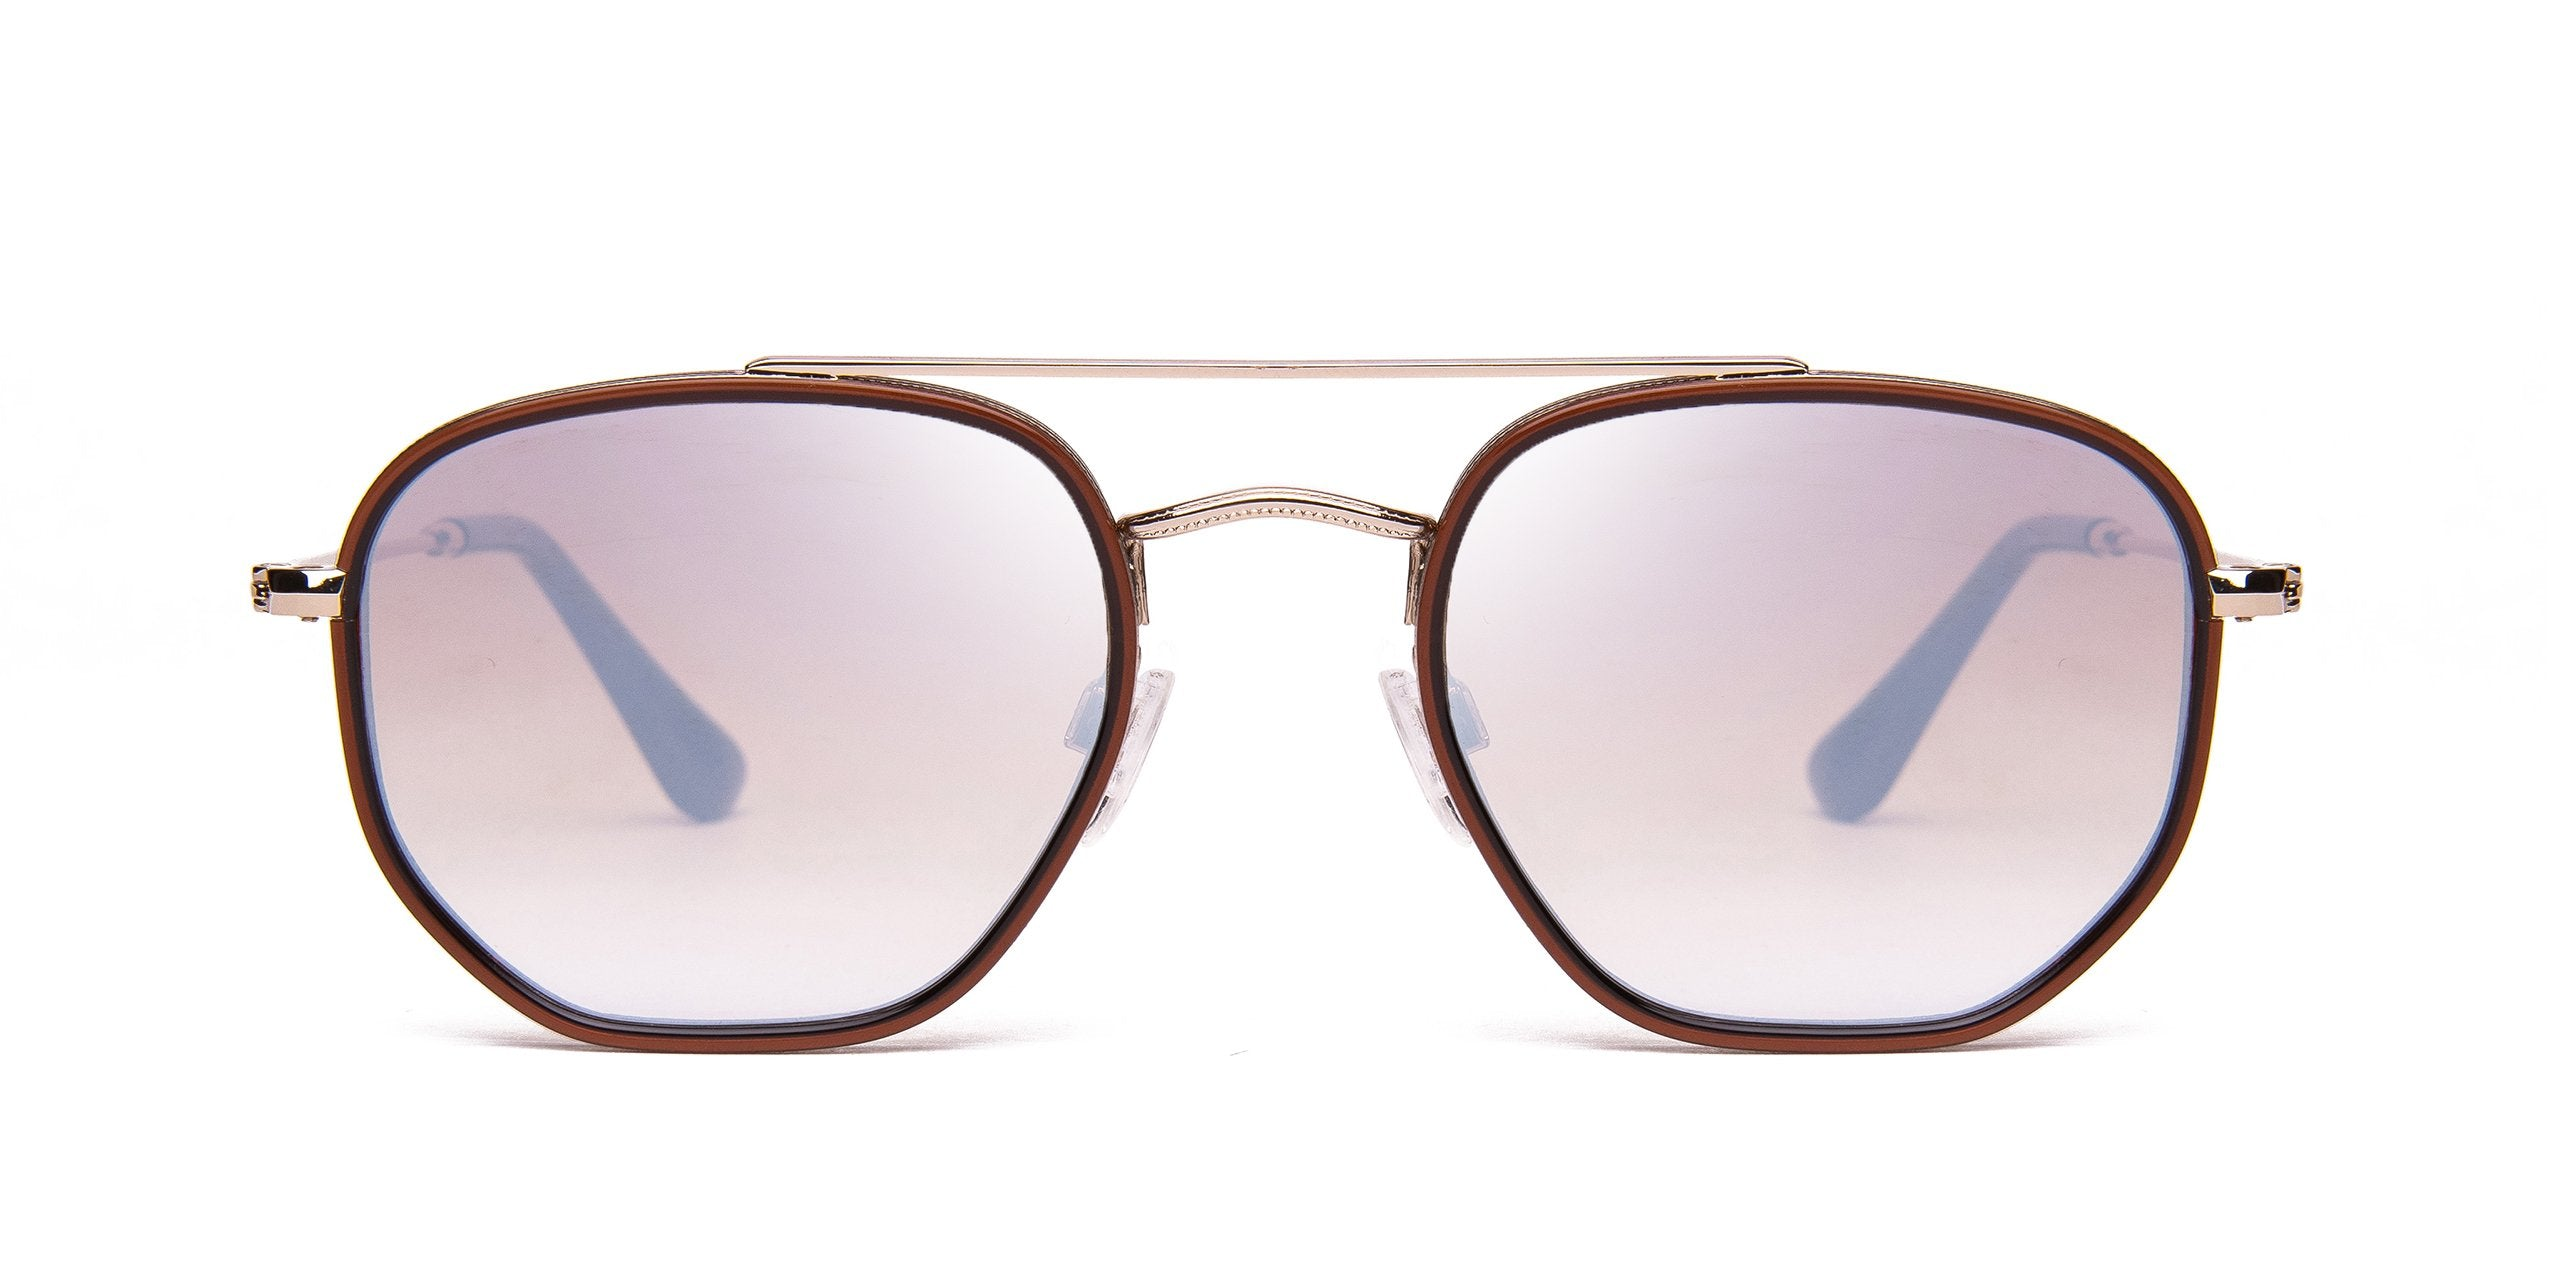 FRAME Transparent Brown LENS Gradient Brown White Mirror